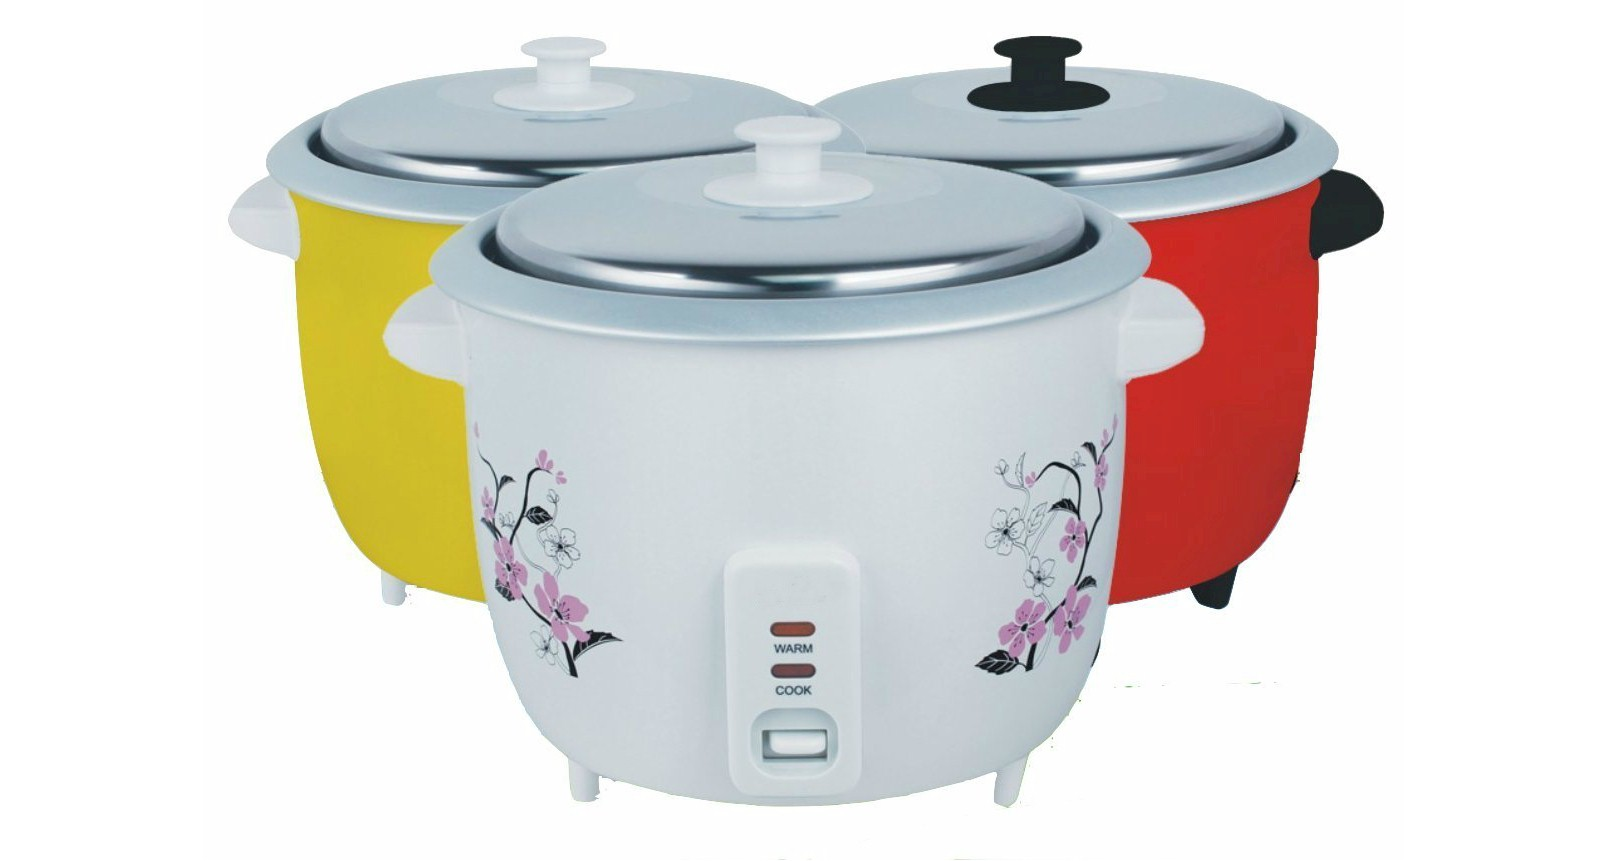 Uncategorized Best Price Kitchen Appliances buildmantra com online at best price in india home appliances electric rice cooker